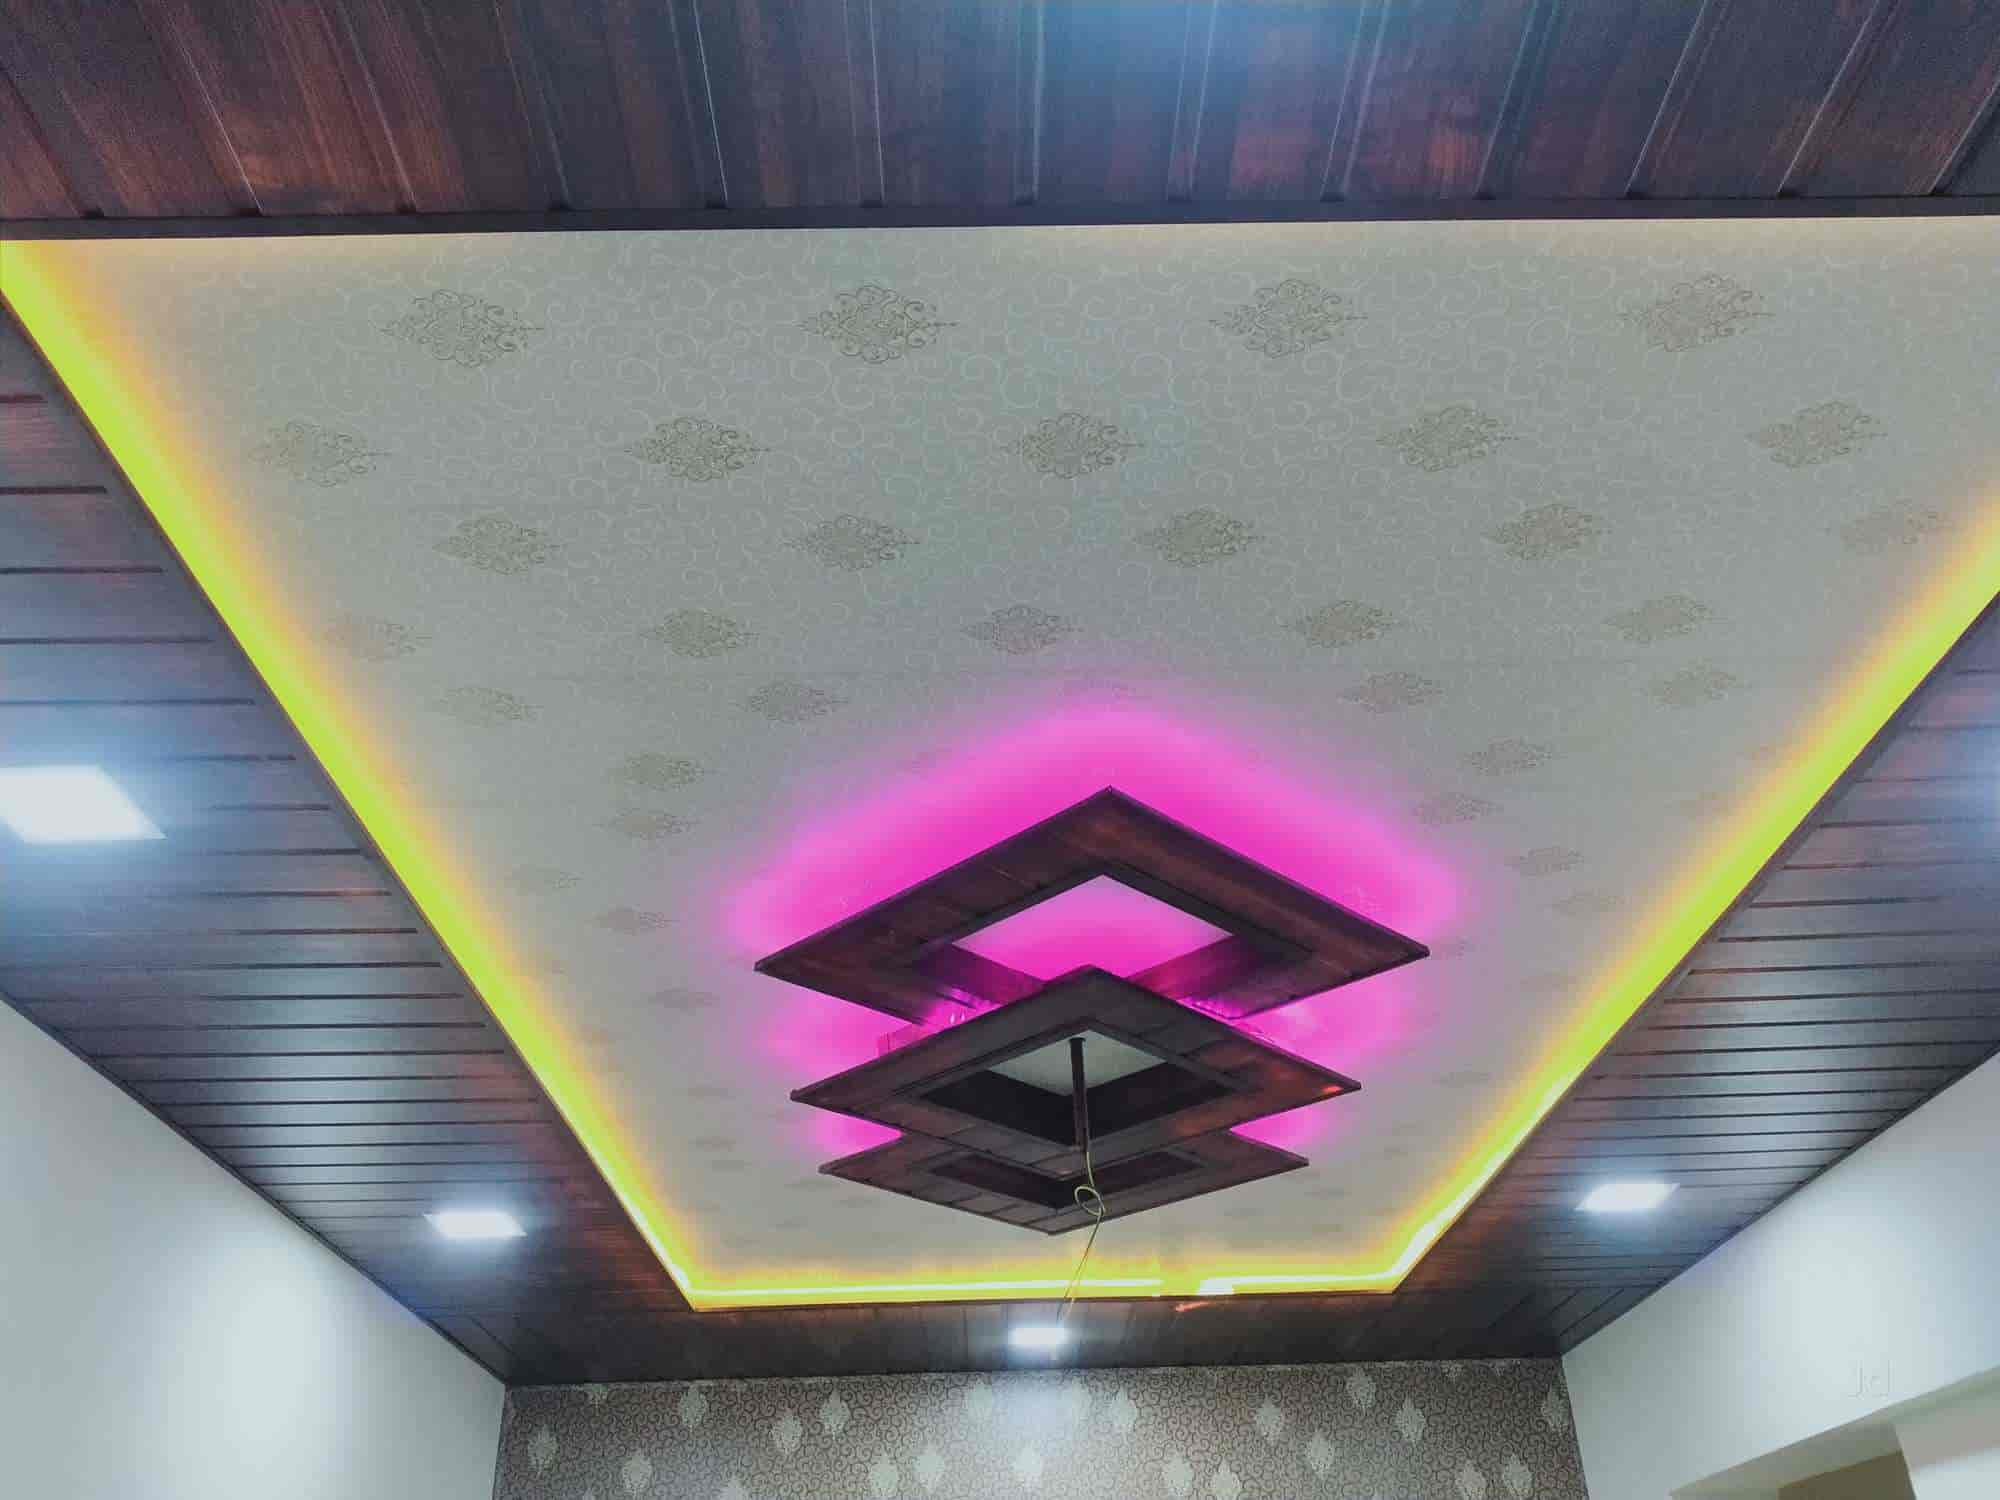 Vighnaharta Pvc Ceiling Decorator And Furnitures Wakad Furniture Manufacturers In Pune Justdial